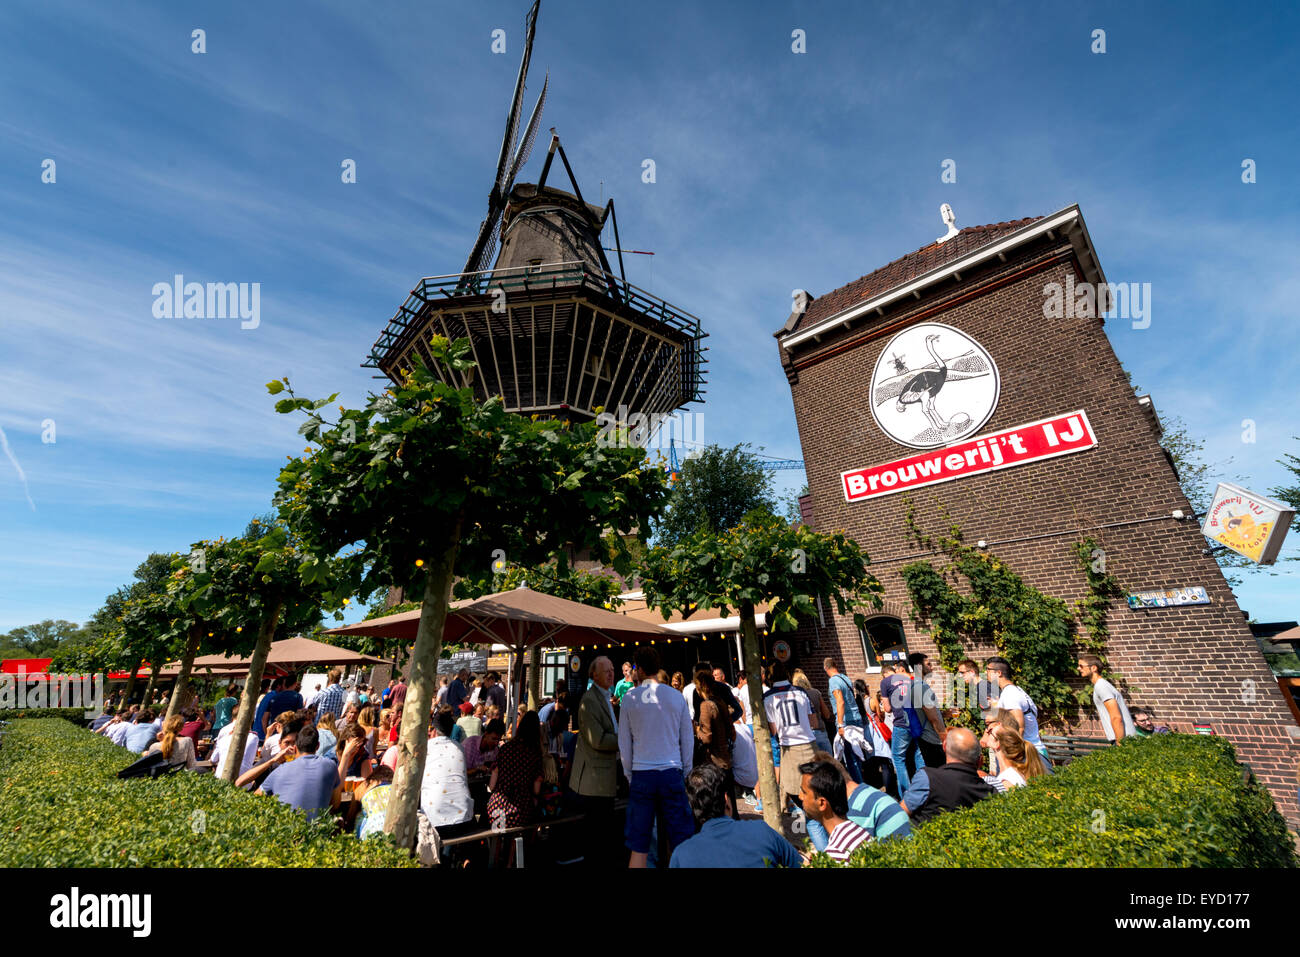 The Brouwerij 't IJ microbrewery in East Amsterdam next to the Gooyer windmill - Stock Image